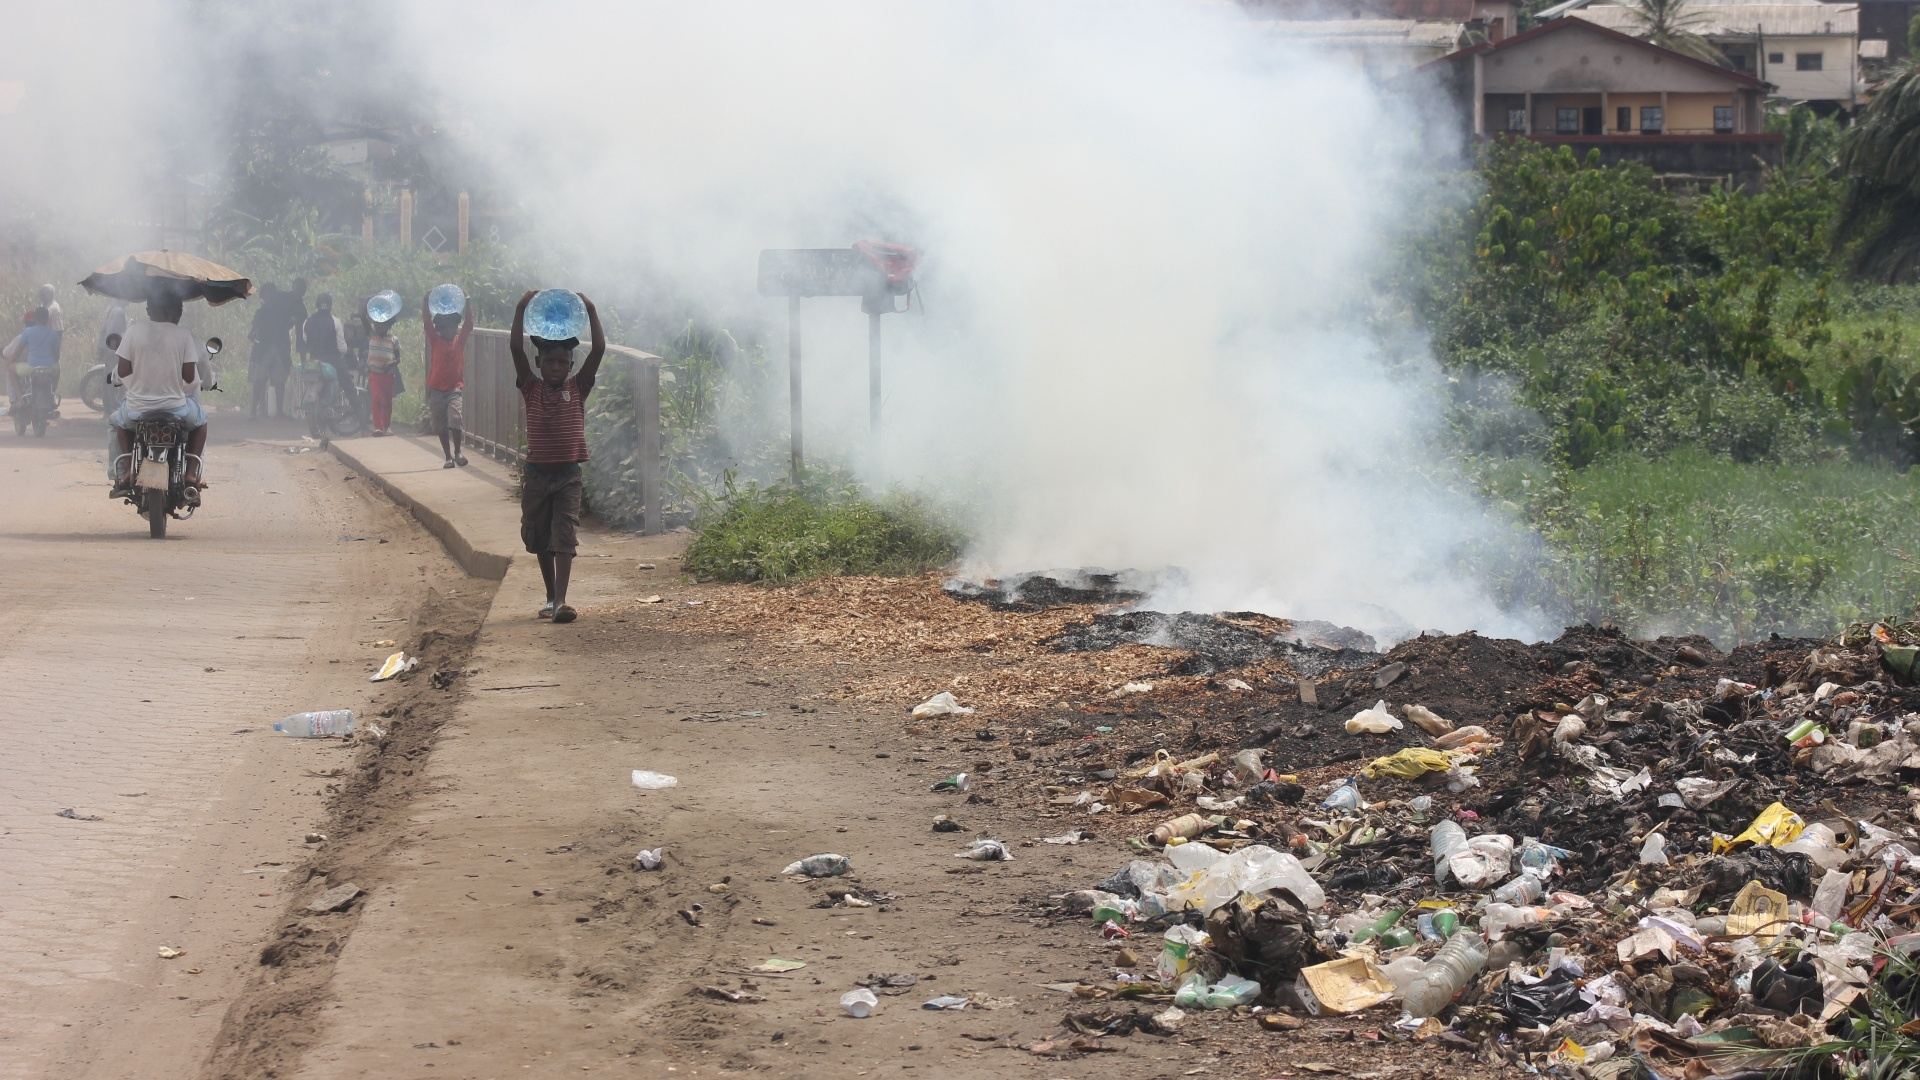 Burning waste is damaging the health of 'tens of millions' of people